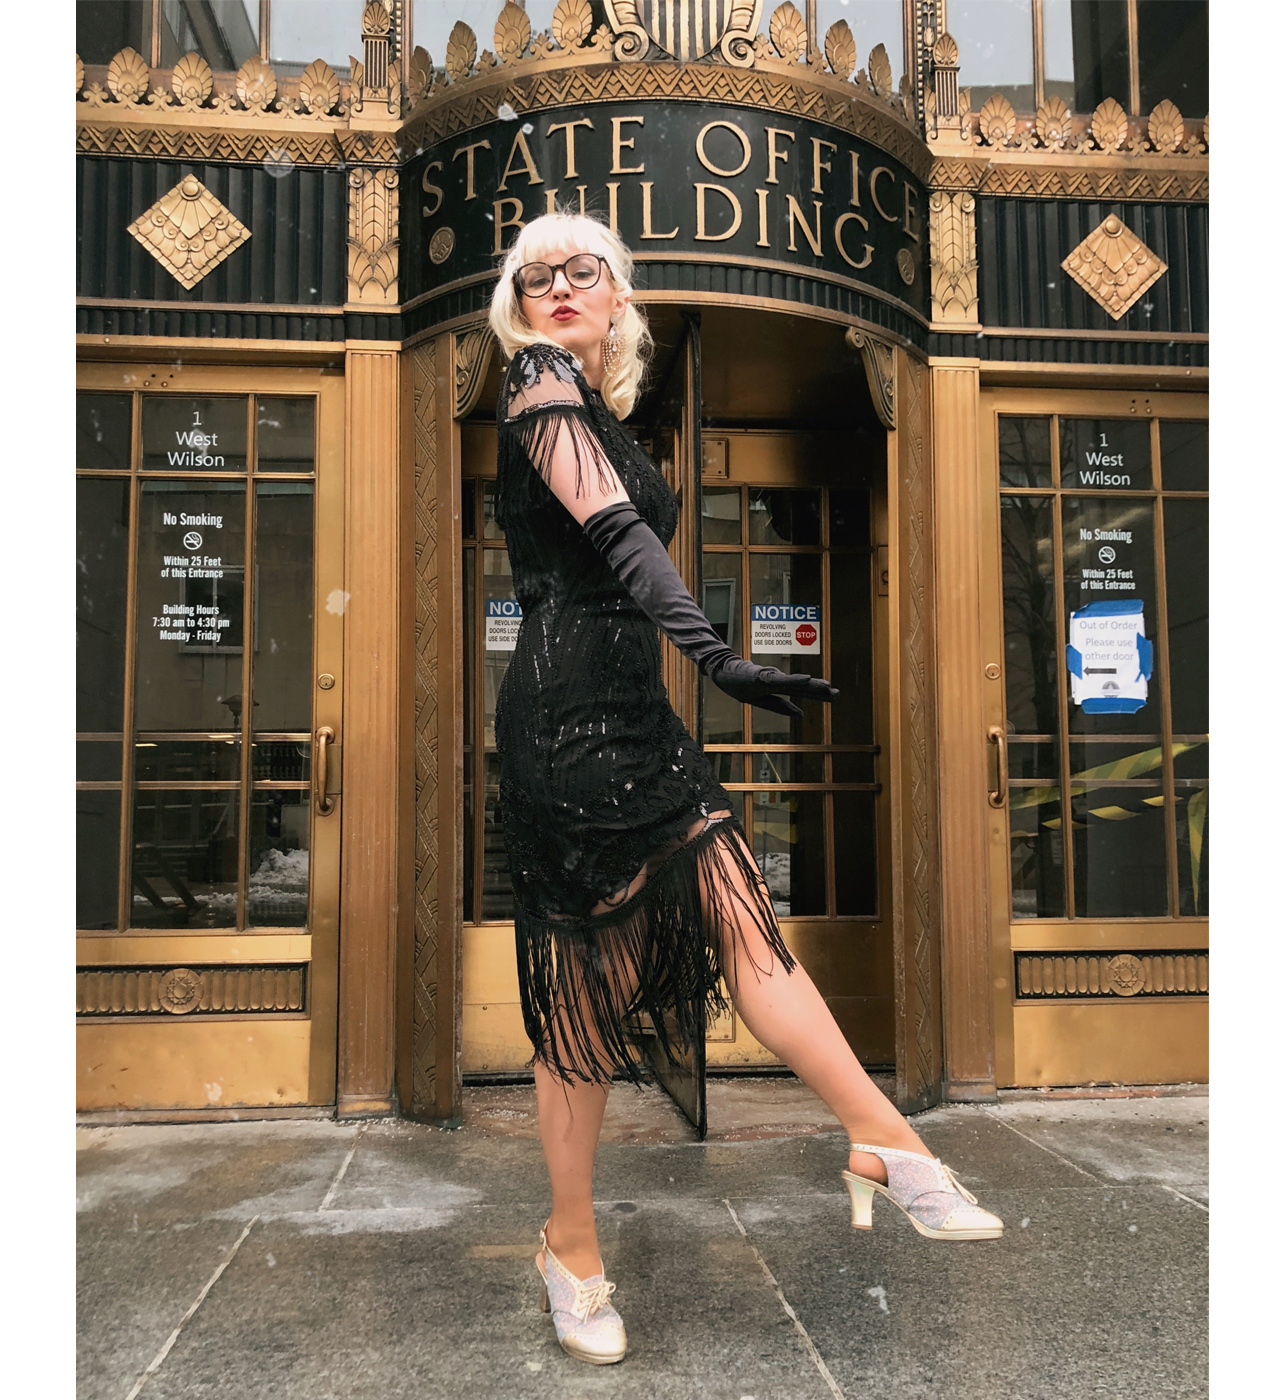 Blonde woman striking a pose in a flapper dress outside of the state office building